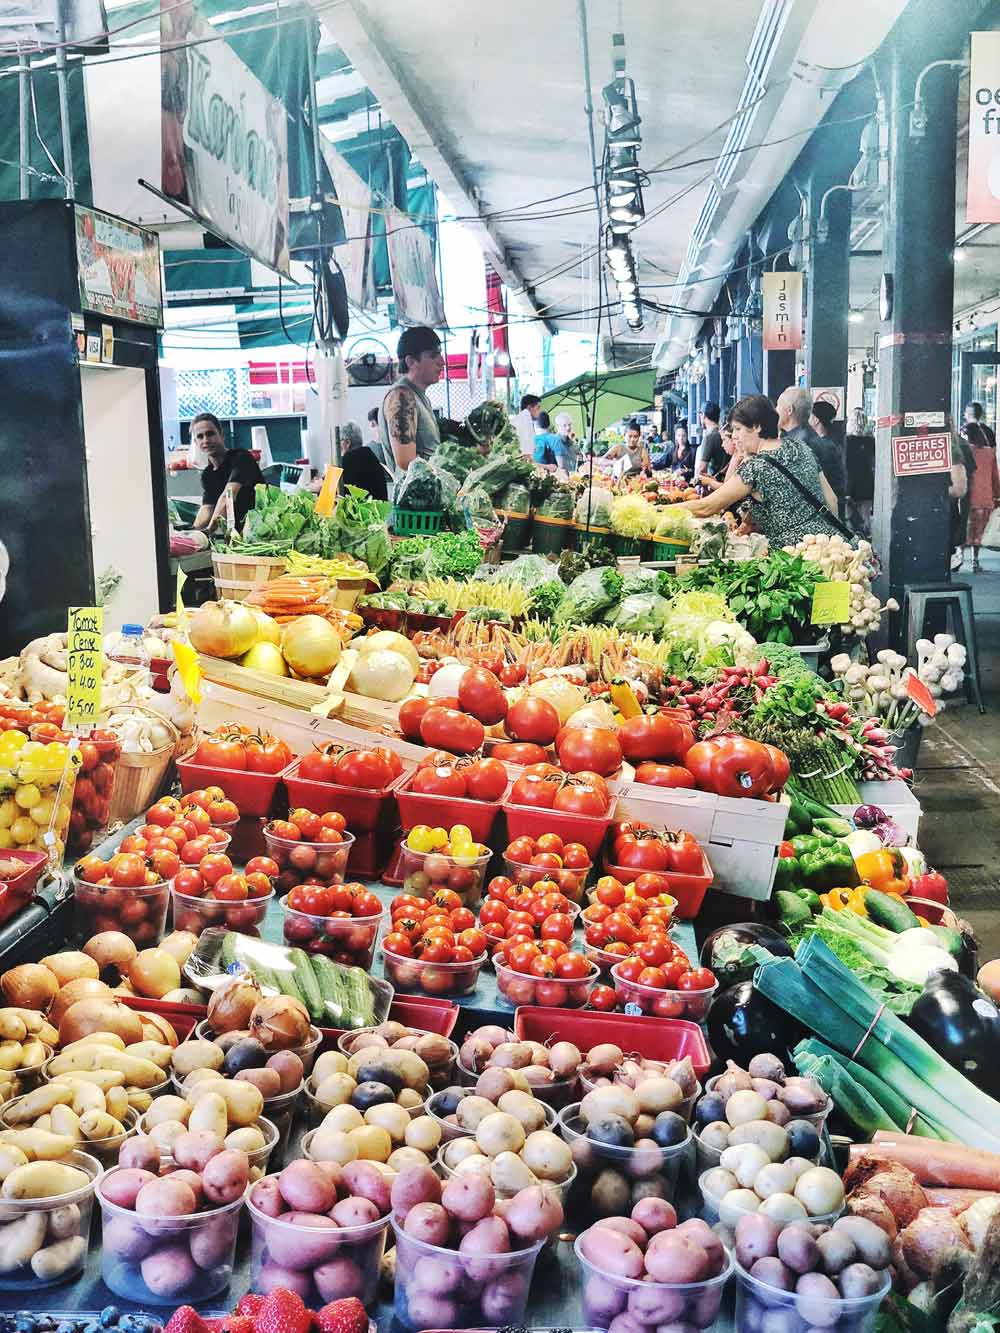 2 Days in Montreal - A Guide to What to Do and Where to Eat - Atwater Market